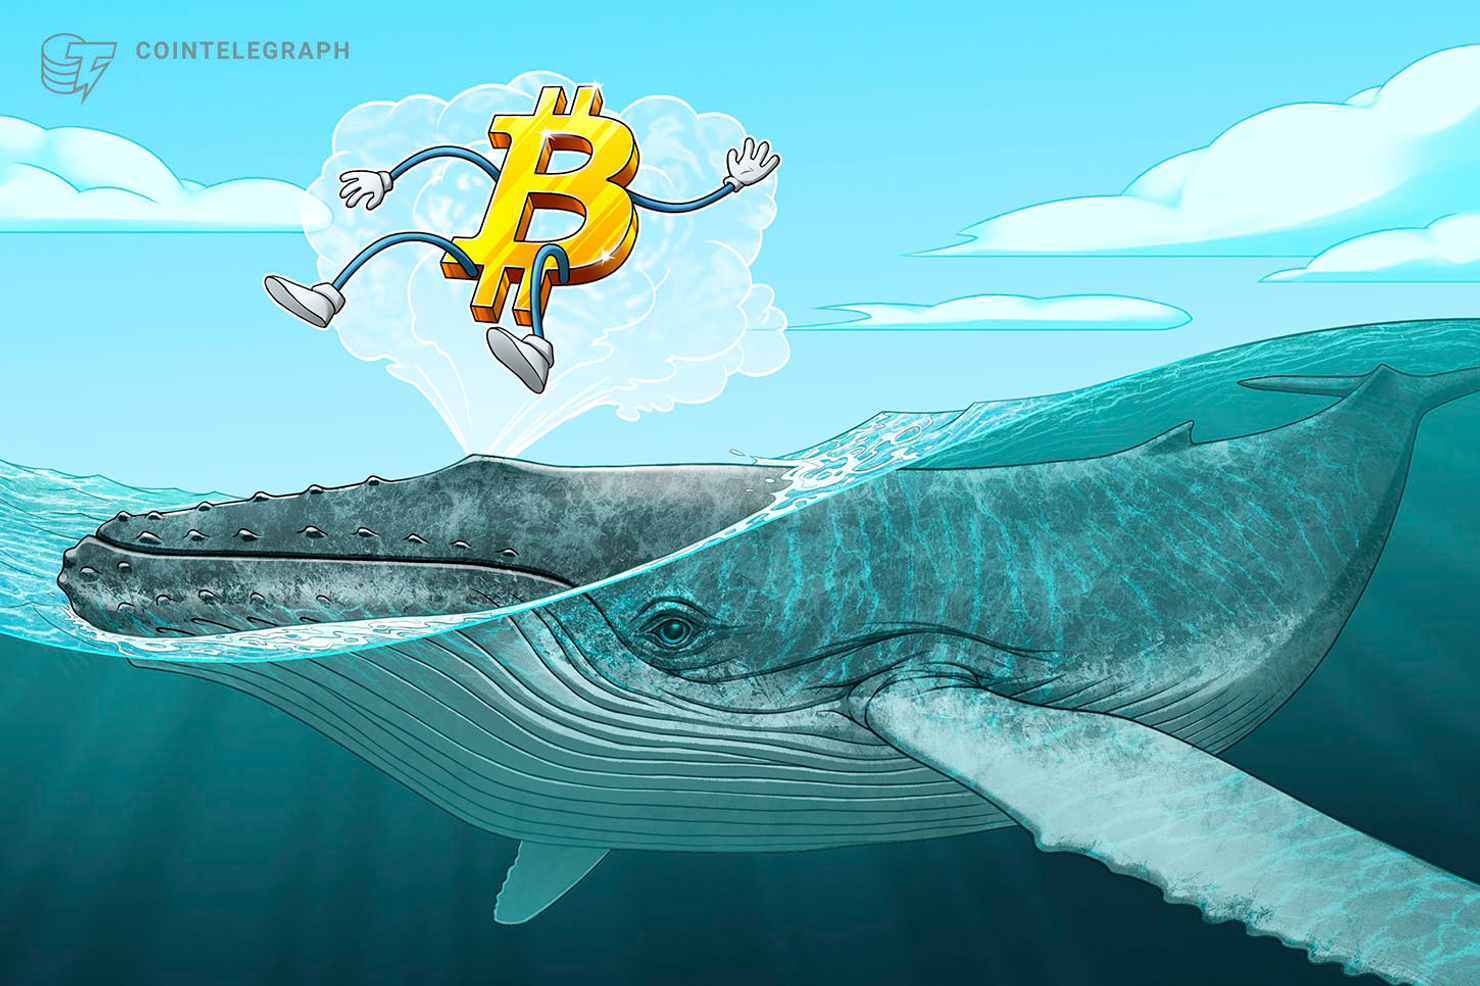 Bitcoin Whale 'Defends' $7.2K Price With 800 BTC to Win $0.01 in DOGE